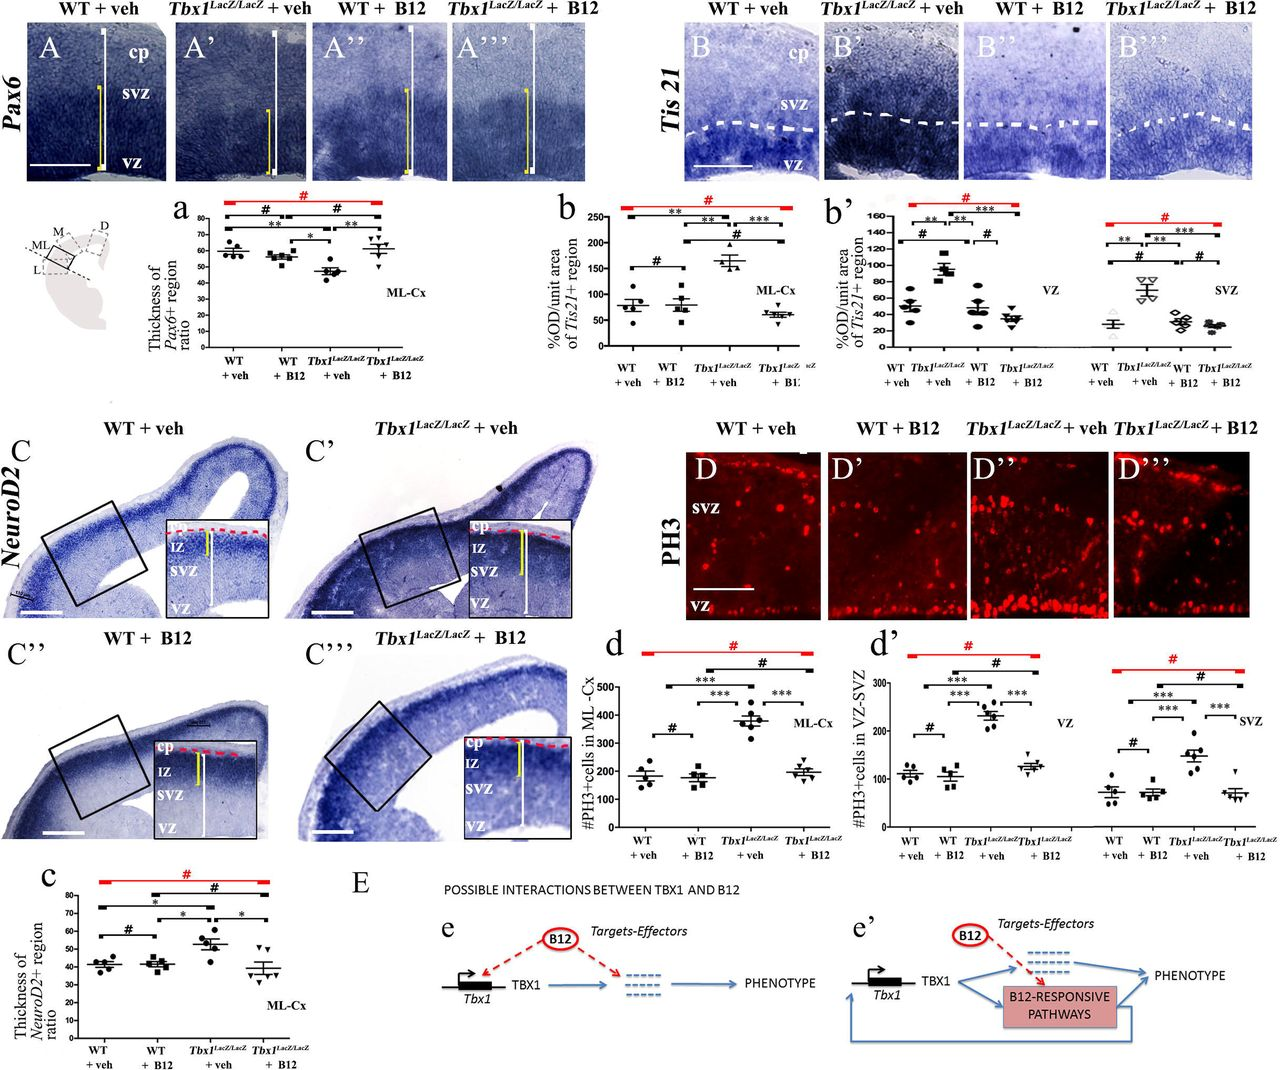 """Vitamin B12 treatment restores normal expression of cortical markers in Tbx1 heterozygous embryos. Panels show coronal sections of embryonic brains at E13.5. (A, a) Immunostaining for TBR1 (A–A′′') revealed the precocious presence of terminally differentiated neurons in the SVZ of Tbx1 lacZ /+ embryos (A'). White brackets define the regions containing TBR1-positive cells in A, A'. Quantitative analysis confirmed the altered distribution and frequency of mature cortical neurons in the ML-cortex, of Tbx1 lacZ /+ embryos, including the SVZ and CP (a), which was rescued by B12 treatment (A""""', a). (B, b) Immunostaining for phospho-histone 3 (PH3) revealed increased mitotic activity in the proliferative zones (VZ, SVZ) of the ML-cortex of vehicle-treated Tbx1 lacZ /+ embryos (B', b, b') compared to vehicle-treated WT embryos (B, b), which was rescued by B12 treatment (B""""', b, b'). (C, c) Immunostaining for KI67. White asterisks identify KI67-negative regions. Quantitative analysis (c) revealed the reduced thickness of the KI67-expressing region (yellow brackets) relative to the total ventricular-to-pial thickness (white brackets) in vehicle-treated Tbx1 lacZ /+ embryos (C', c) compared to vehicle-treated WT embryos (C), which was rescued by B12 treatment (C""""', c). The cartoon (c') indicates the position of the ML-cortex in coronal sections, where all measurements were made. Scale bars, 100 μm. *P ≤ 0.05, **P ≤ 0.01, ***P ≤ 0.001, error bars indicate ±SEM, n = 5–6 per genotype. Abbreviations: VZ, ventricular zone; SVZ, subventricular zone; CP, cortical plate; ML-Cx, medio-lateral cortex; D, dorsal; M, medial; ML, medio-lateral; L, lateral; OD, optical density."""